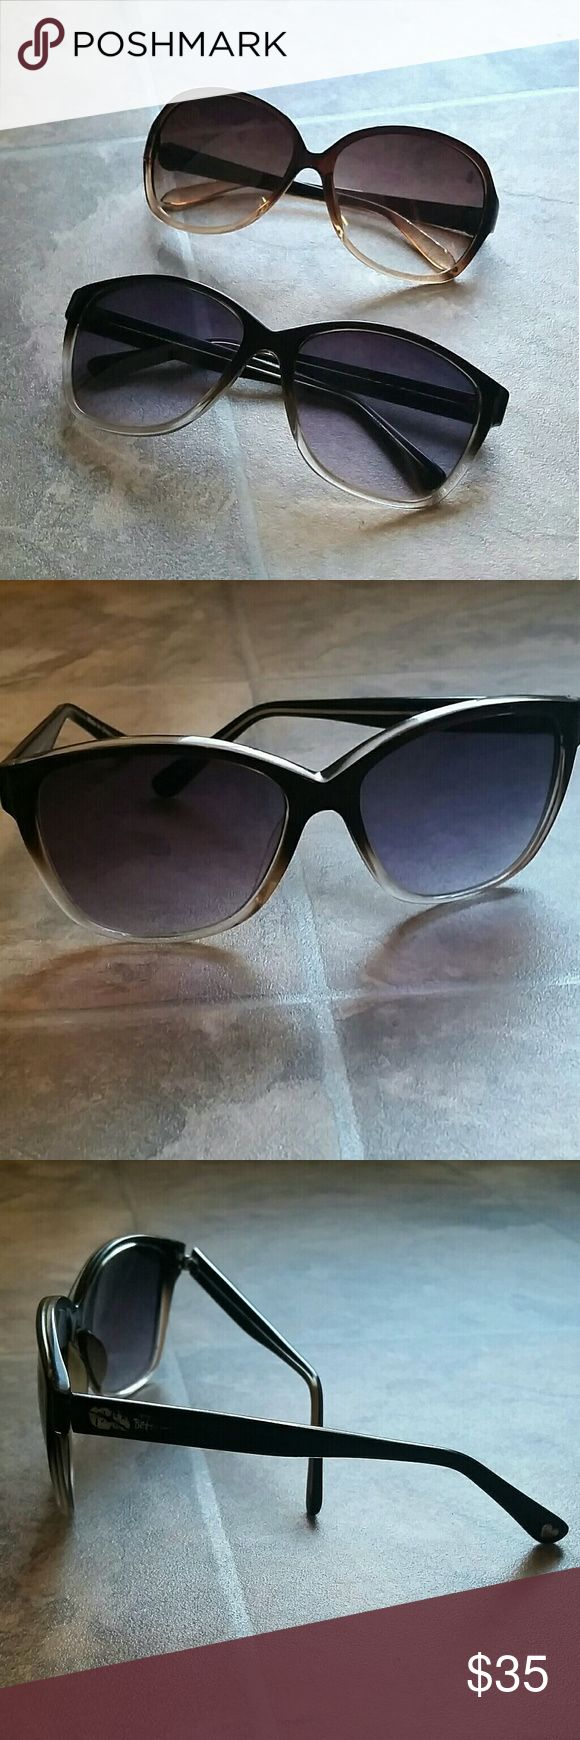 Betsey Johnson & JLO Sunglasses Bundle These Betsey Johnson & Jennifer Lopez sunglasses are both in great condition and are super cute! The Betsey Johnson glasses has a few scratches on the lens, but nothing noticeable. You will be happy with these shades